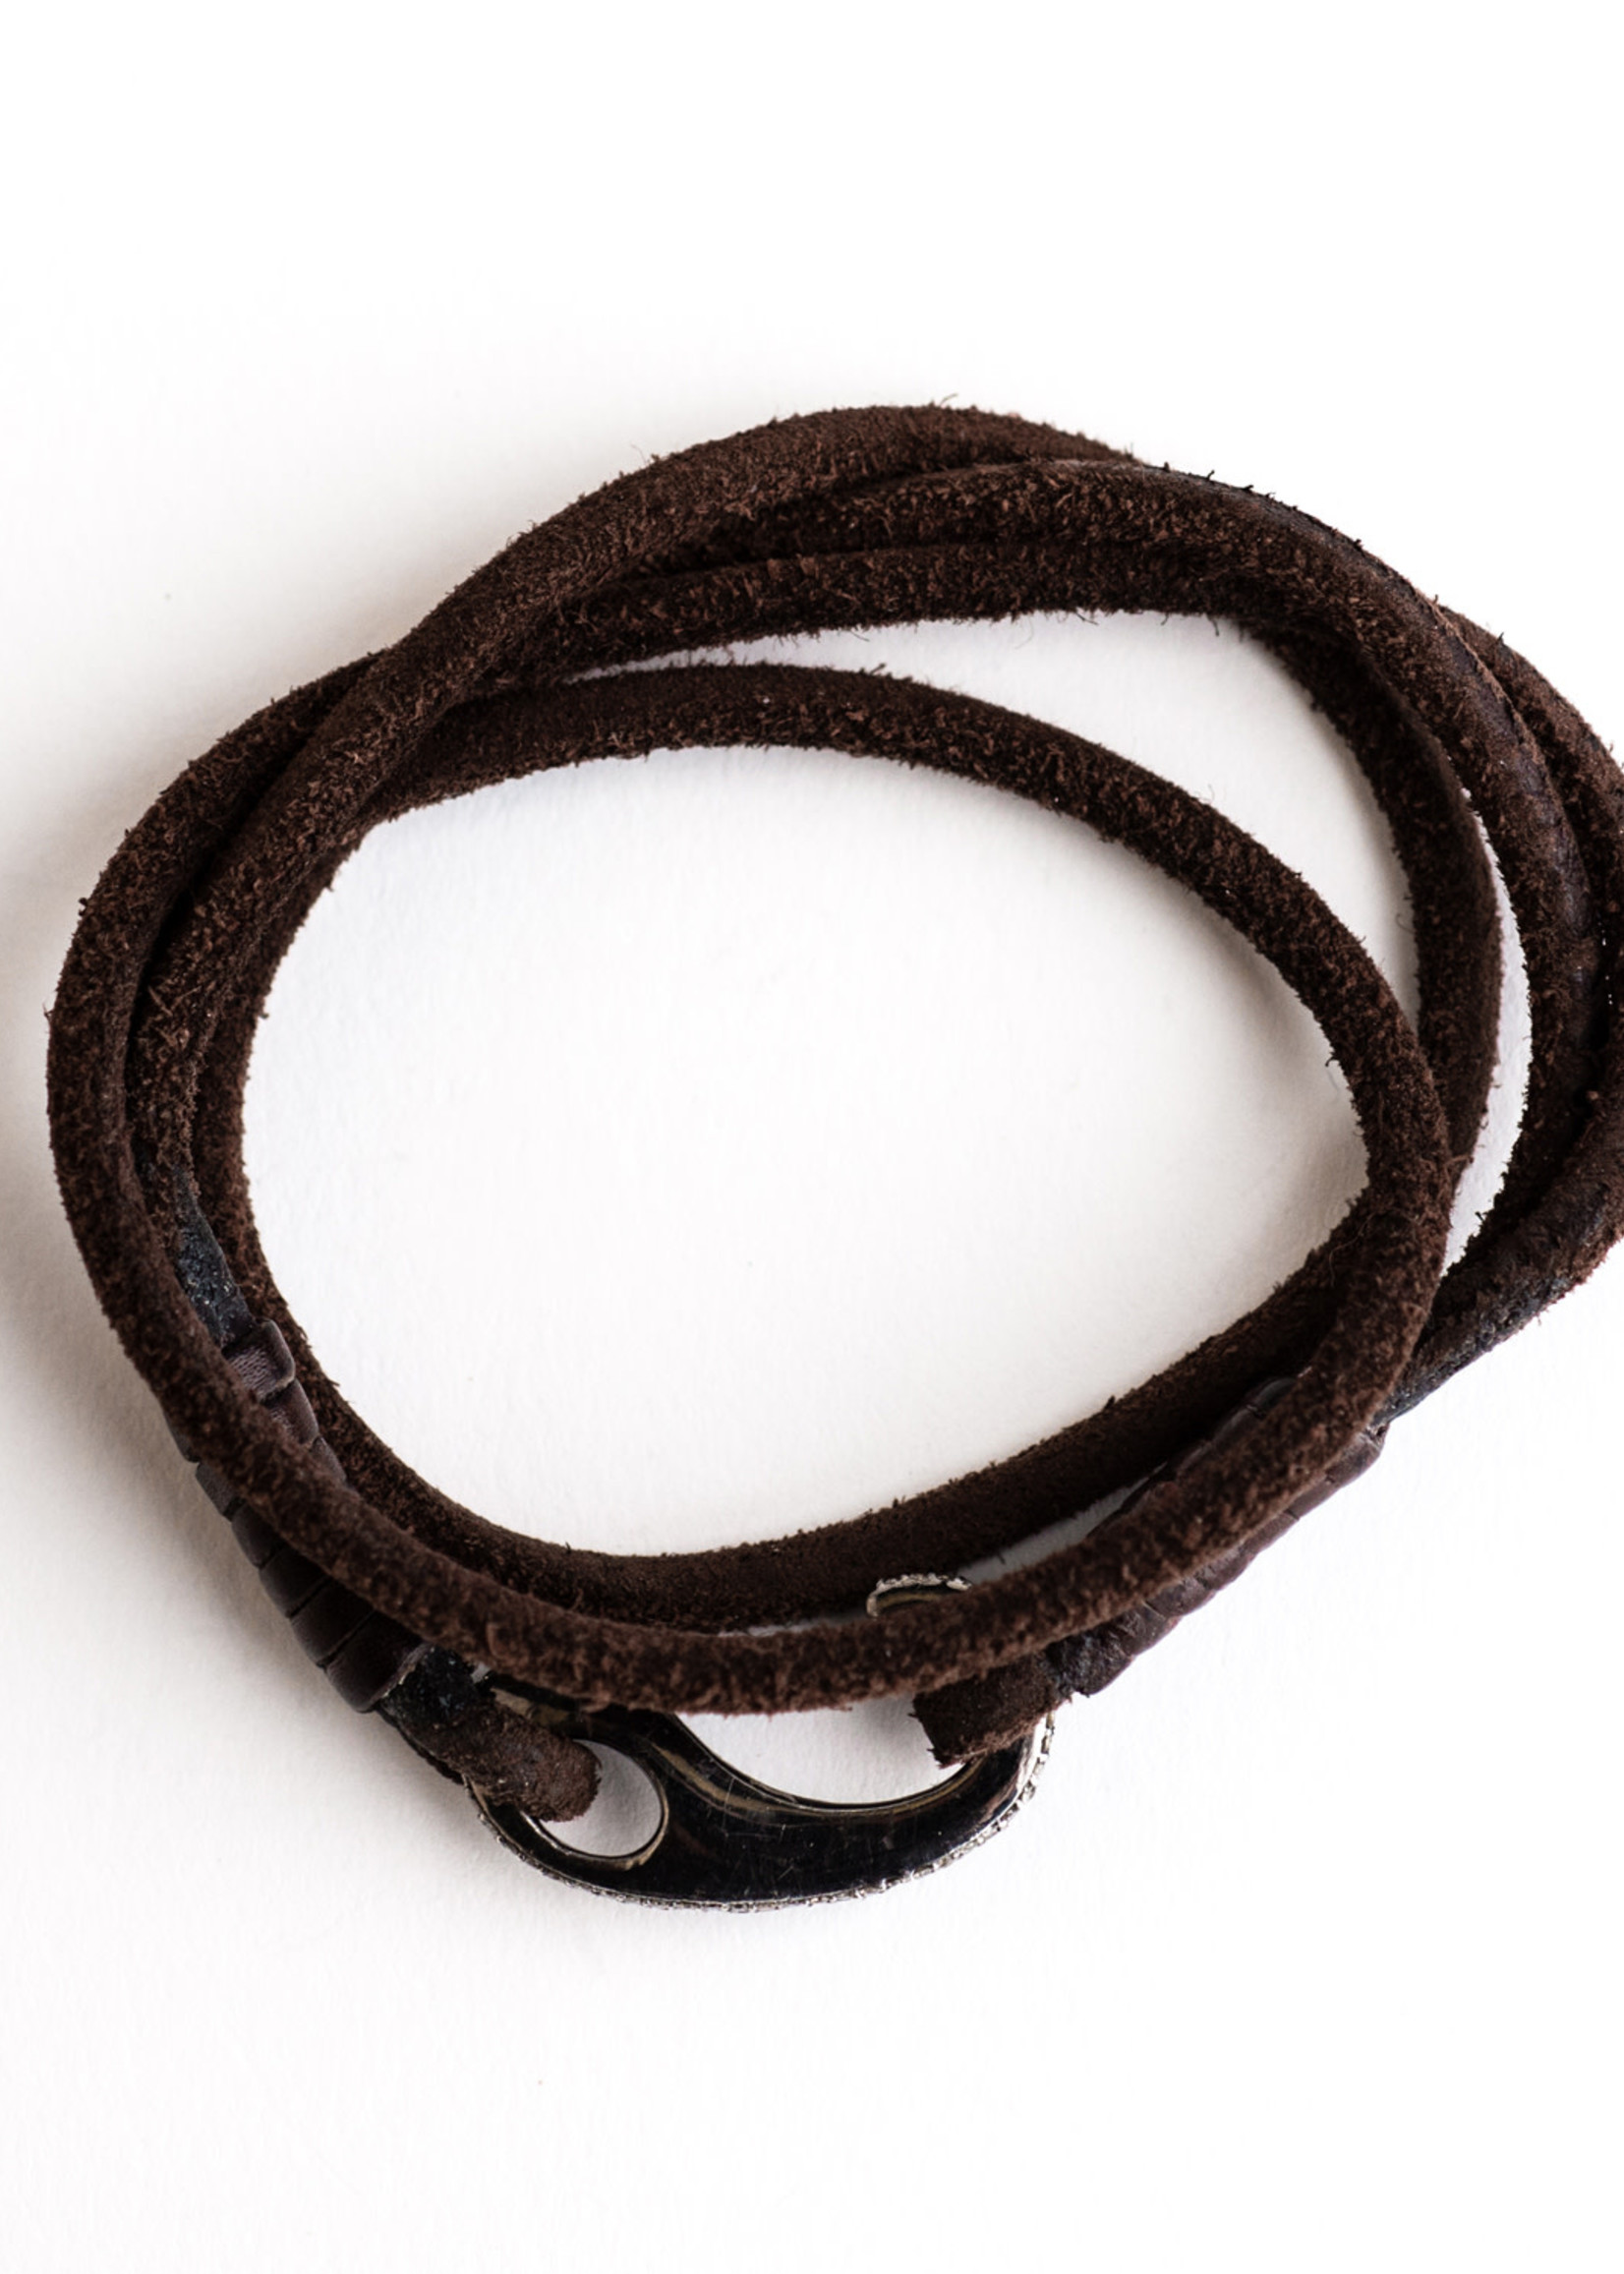 Mina Danielle Chocolate Brown Leather Wrap with Diamond Bungee Clip